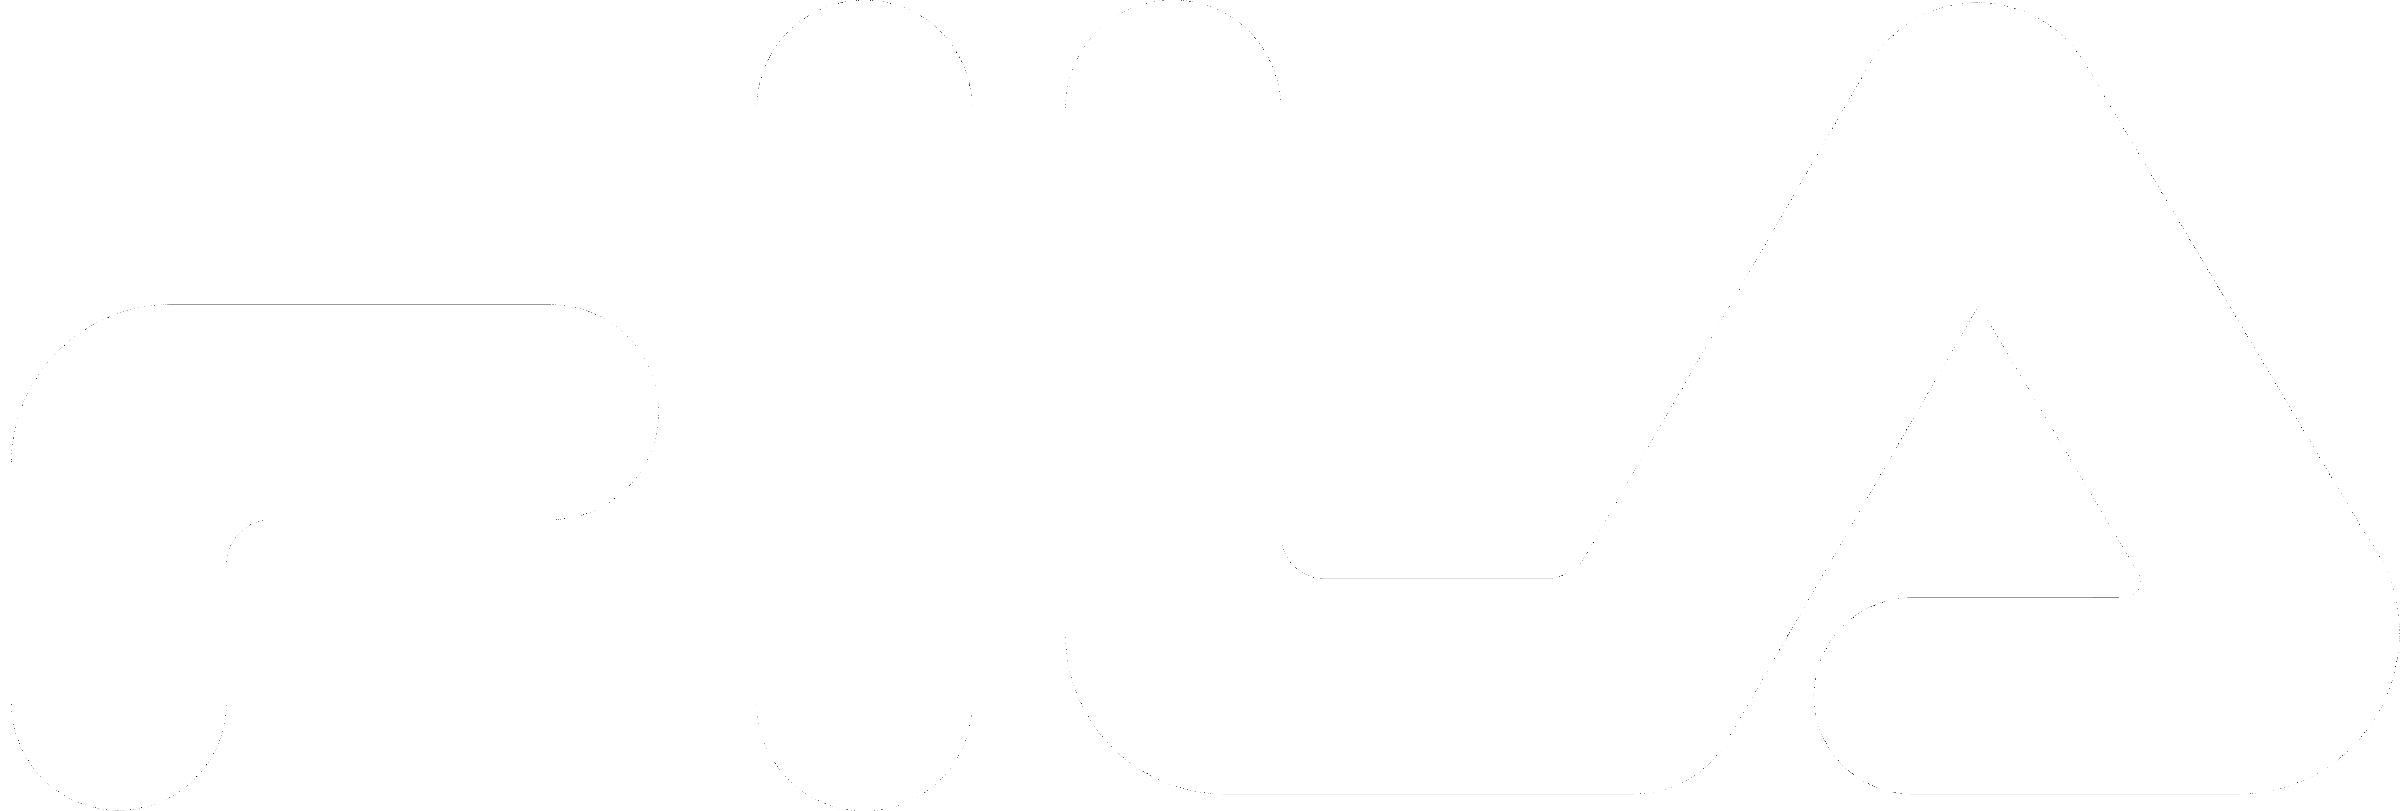 fila-9-logo-black-and-white.png